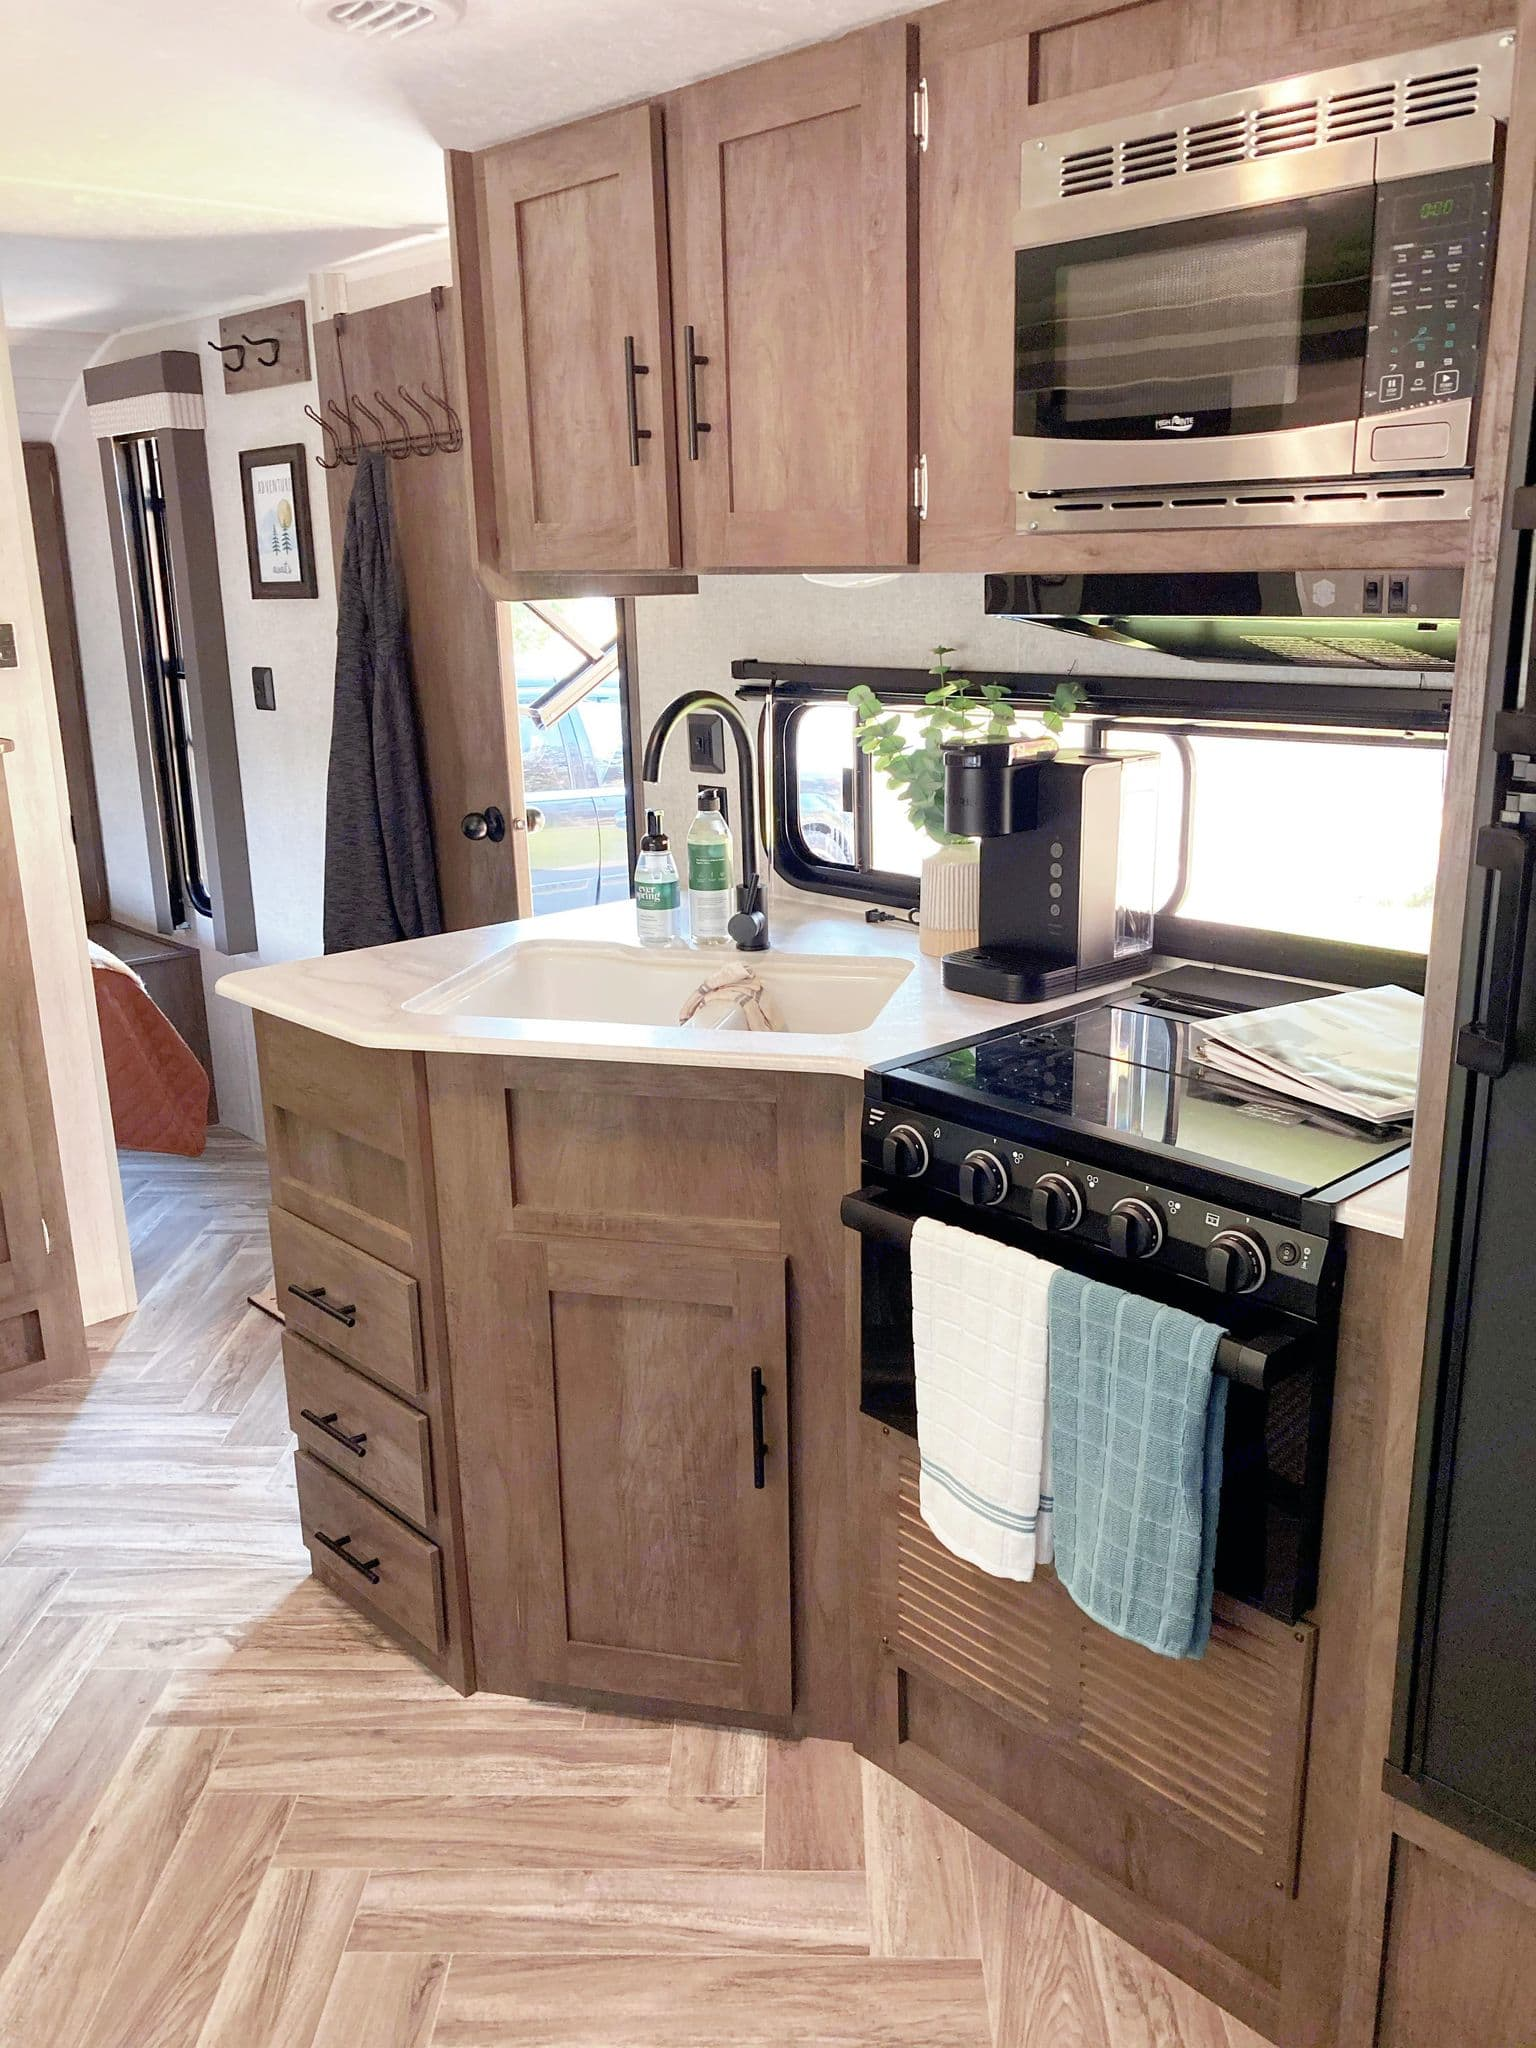 Comes with Keurig coffee maker, samples of coffee, stove, fridge/freezer. Utensils, pots/pans, plastic plates, bowls, cups. . Forest River Salem Cruise Lite 2021